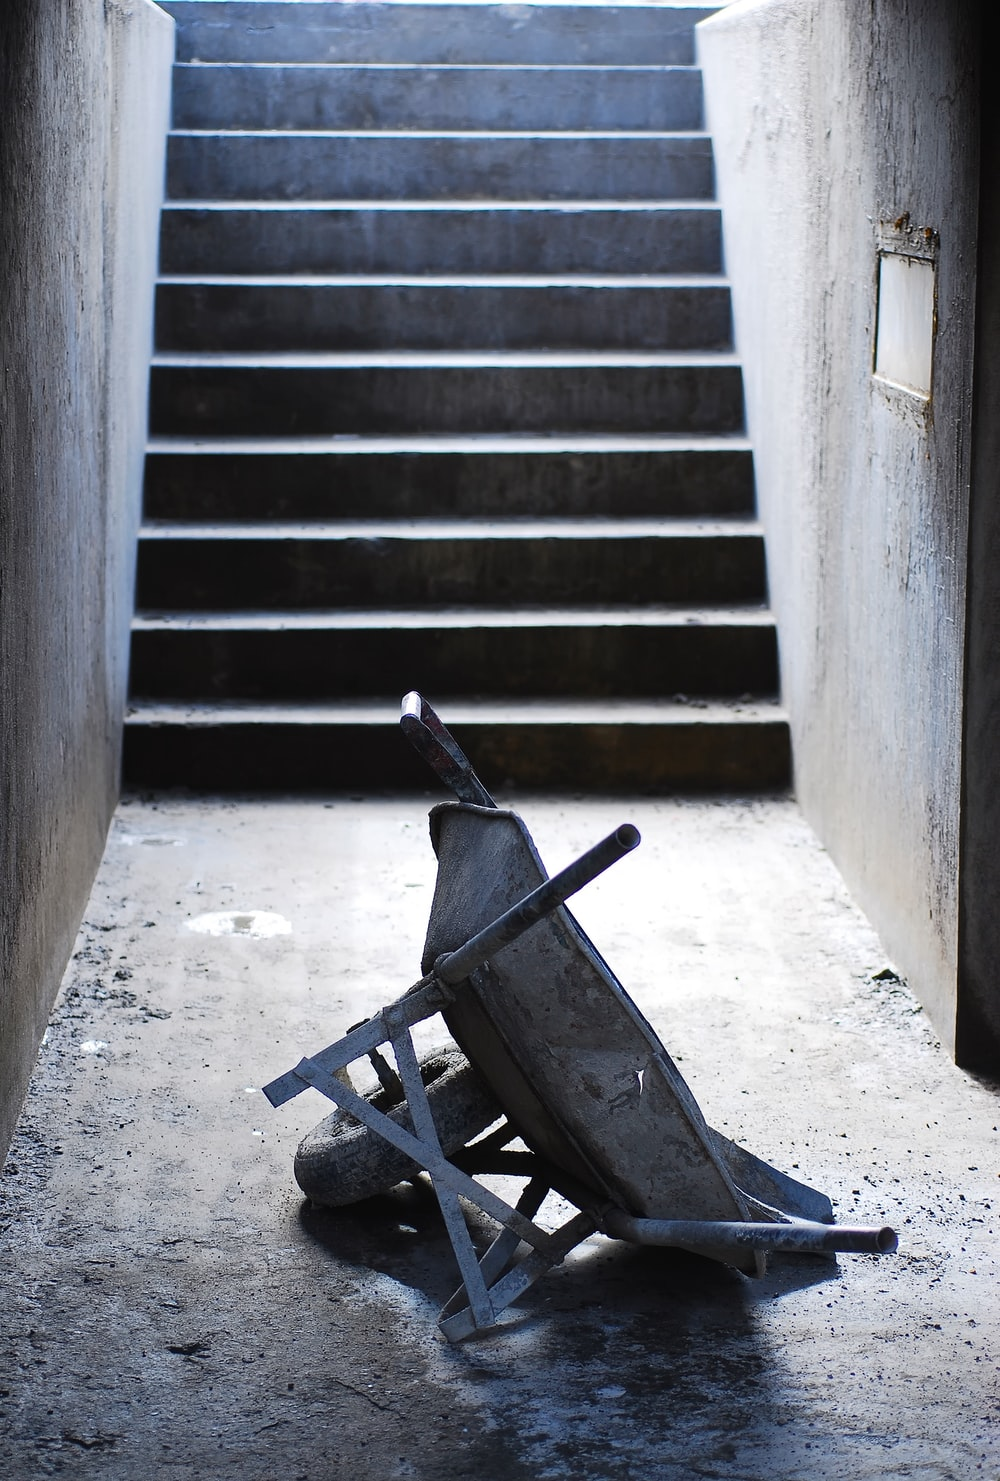 gray wheelbarrow near concrete steps